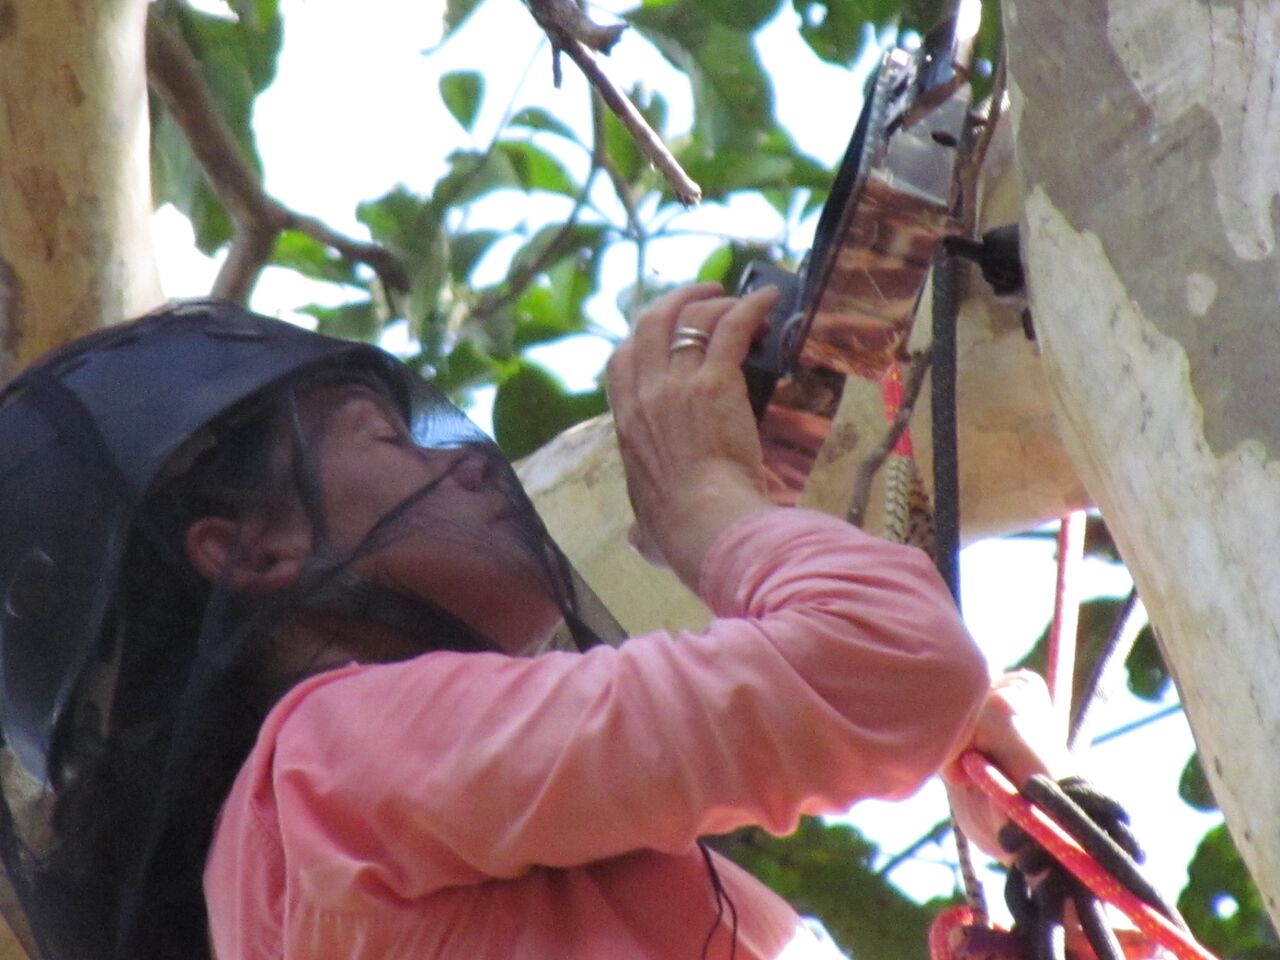 Tremaine Gregory programming a camera trap to monitor a canopy bridge